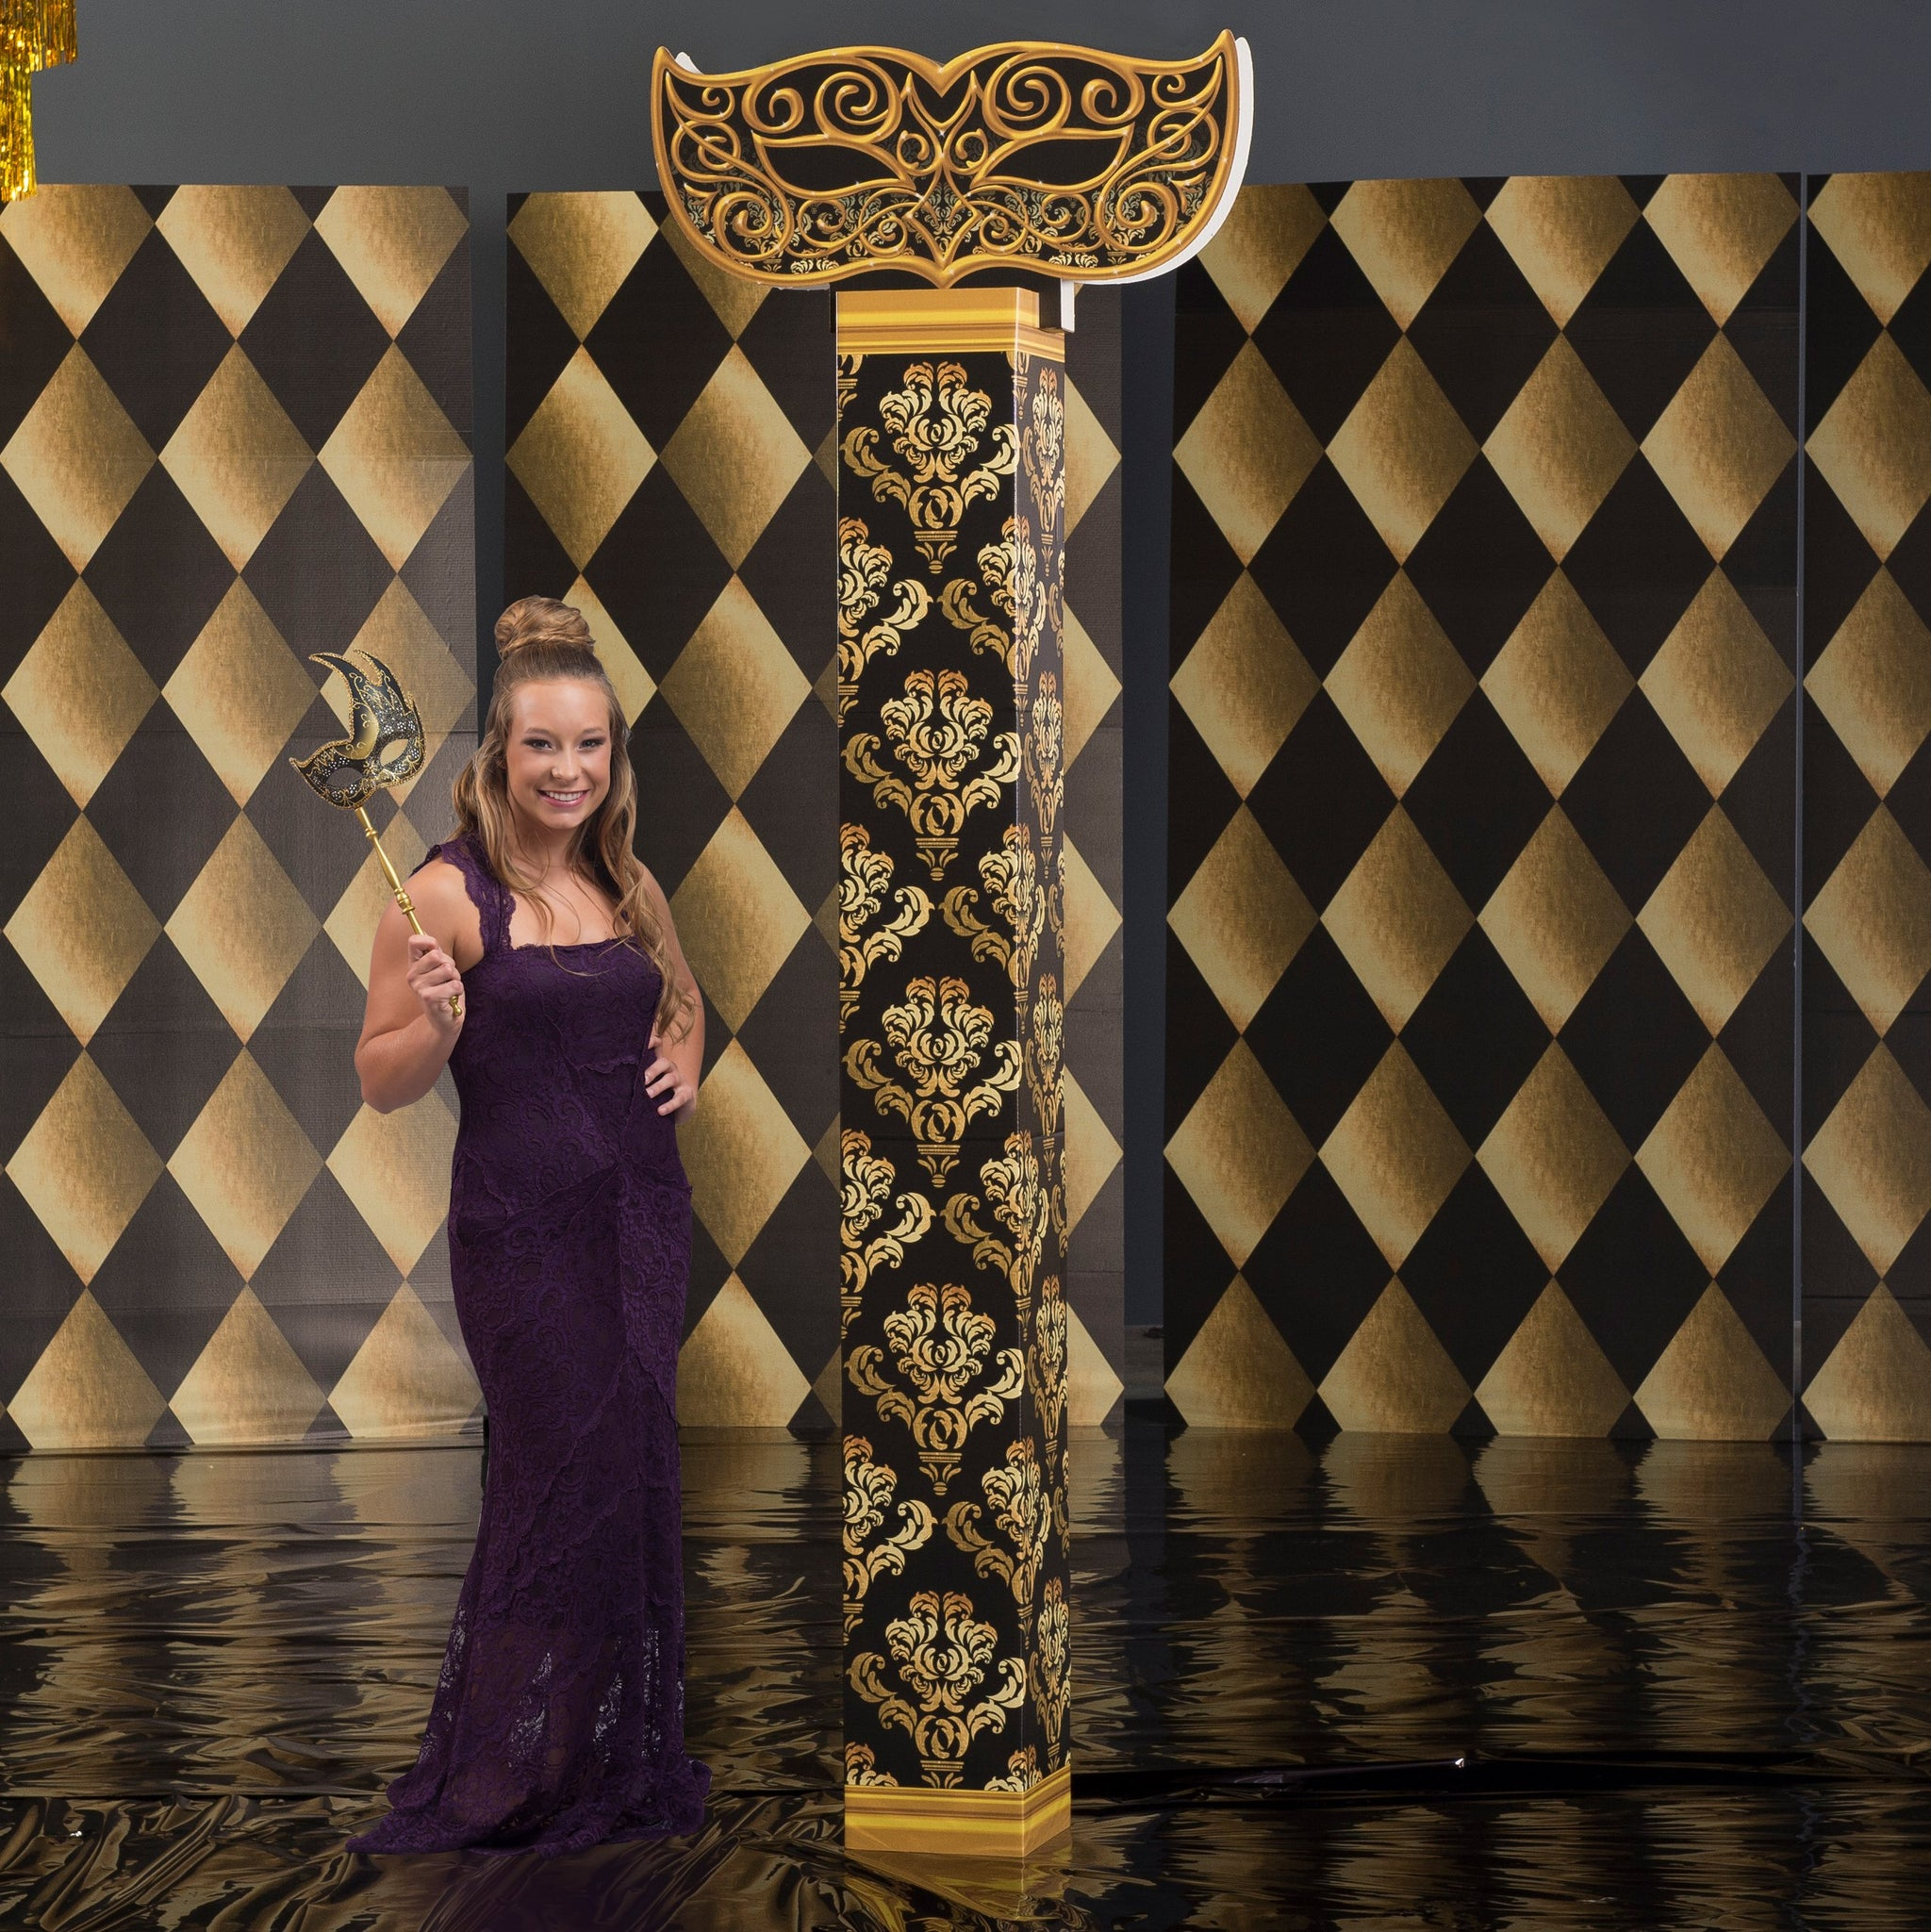 8 ft. 7 in. Black and Gold Mardi Gras Masquerade Column with Topper Photo Booth Prop Background Backdrop Party Decoration Scene Setter